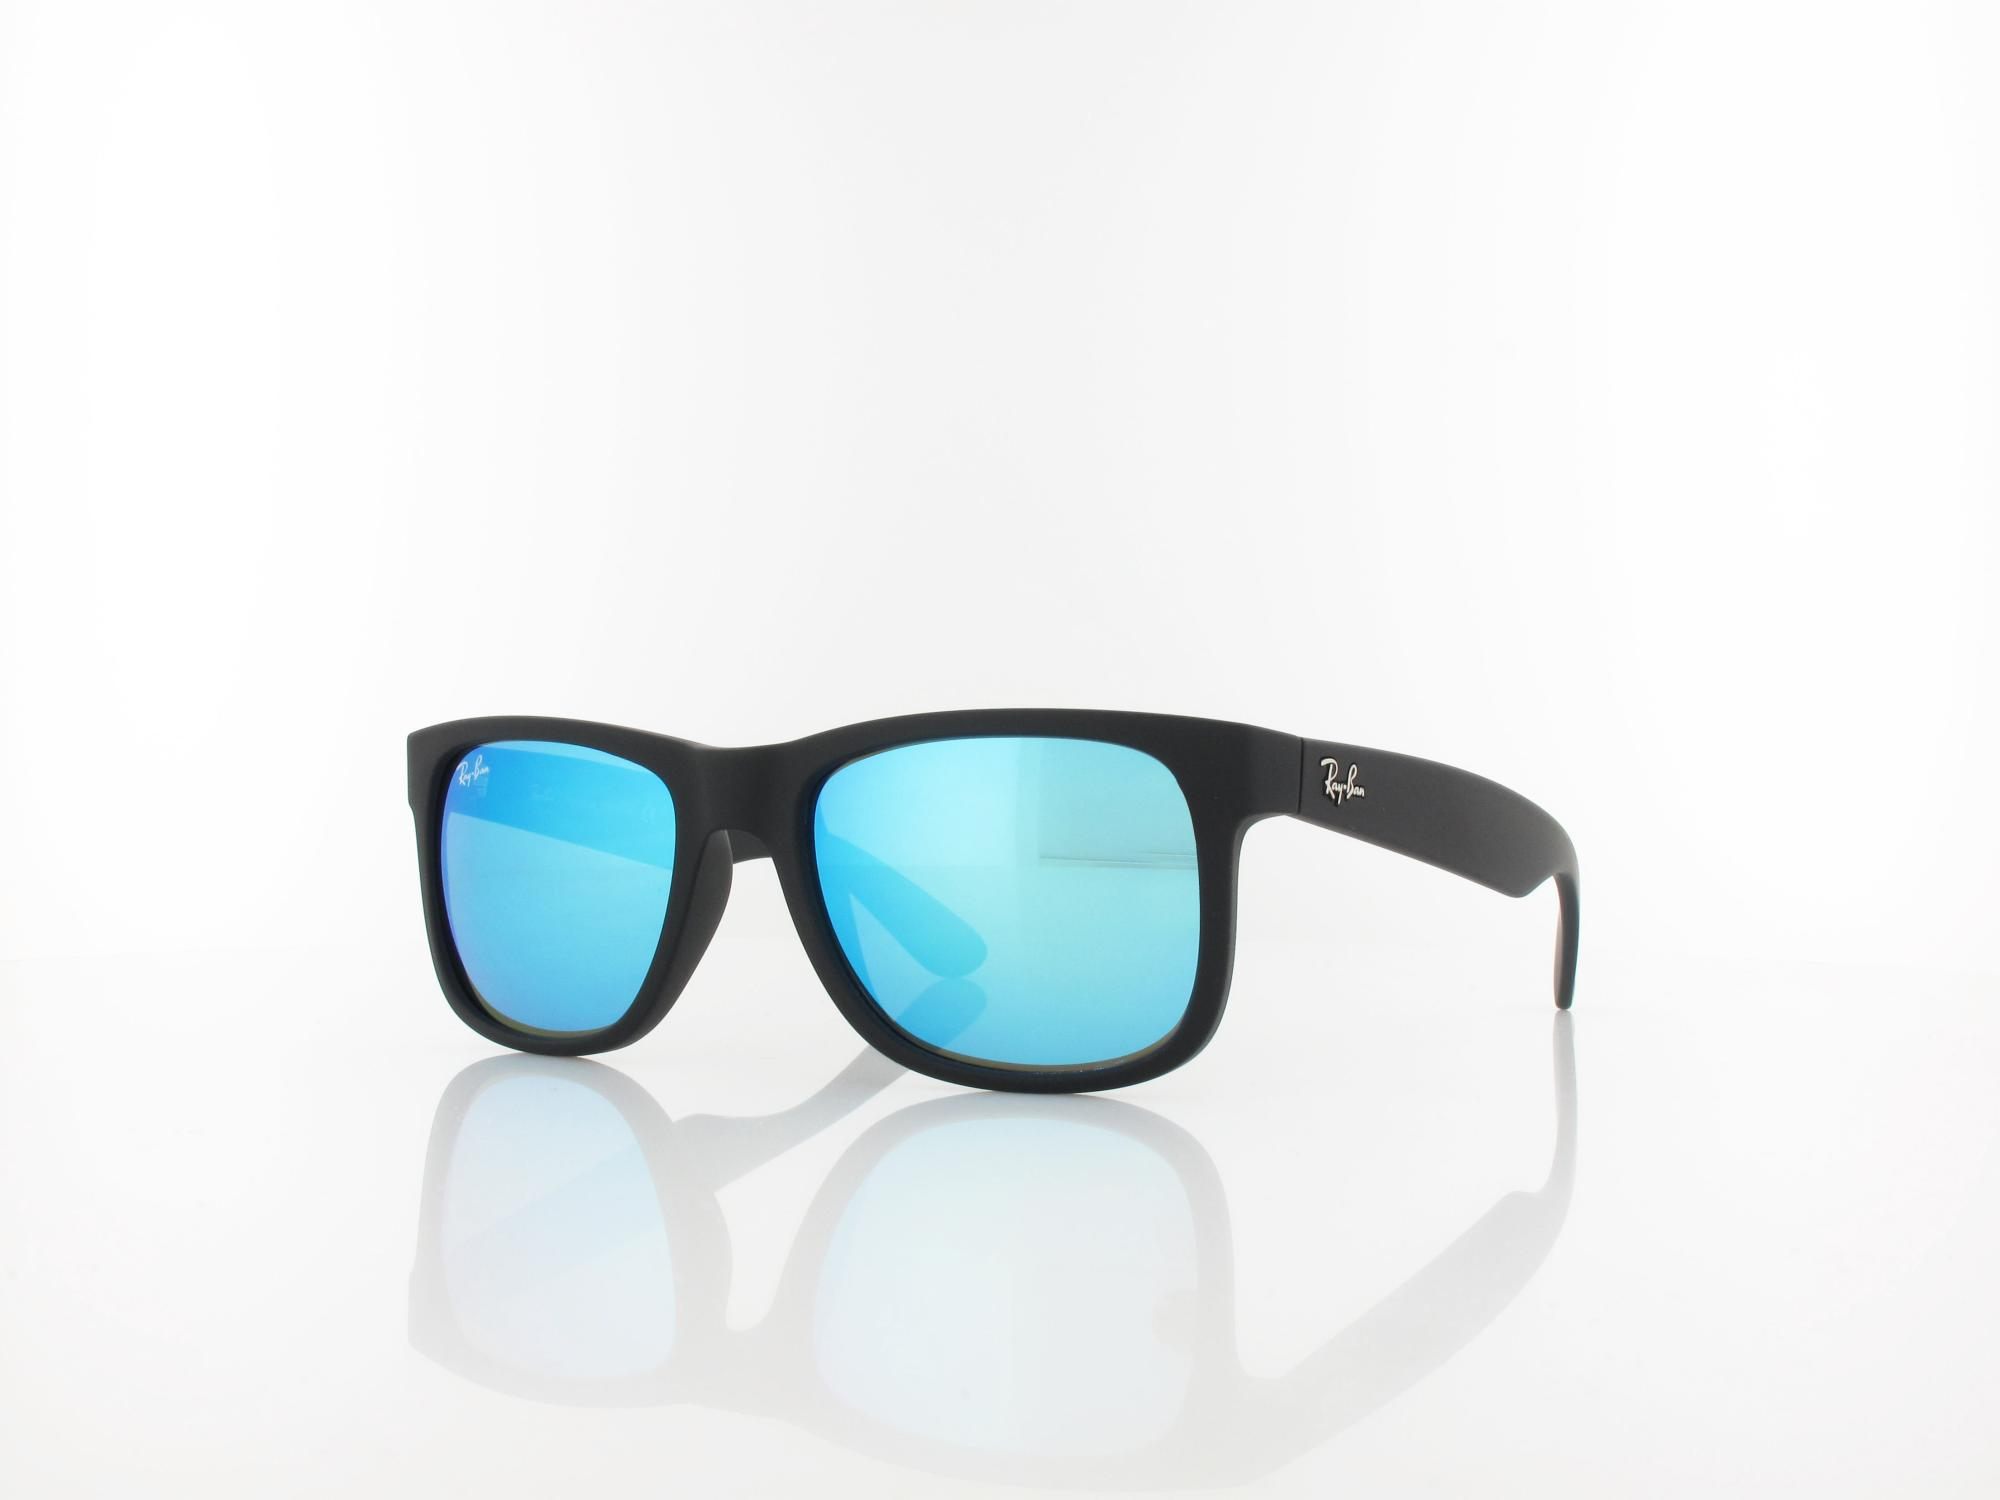 Ray Ban | Justin RB4165 622/55 51 | black rubber / green mirror blue